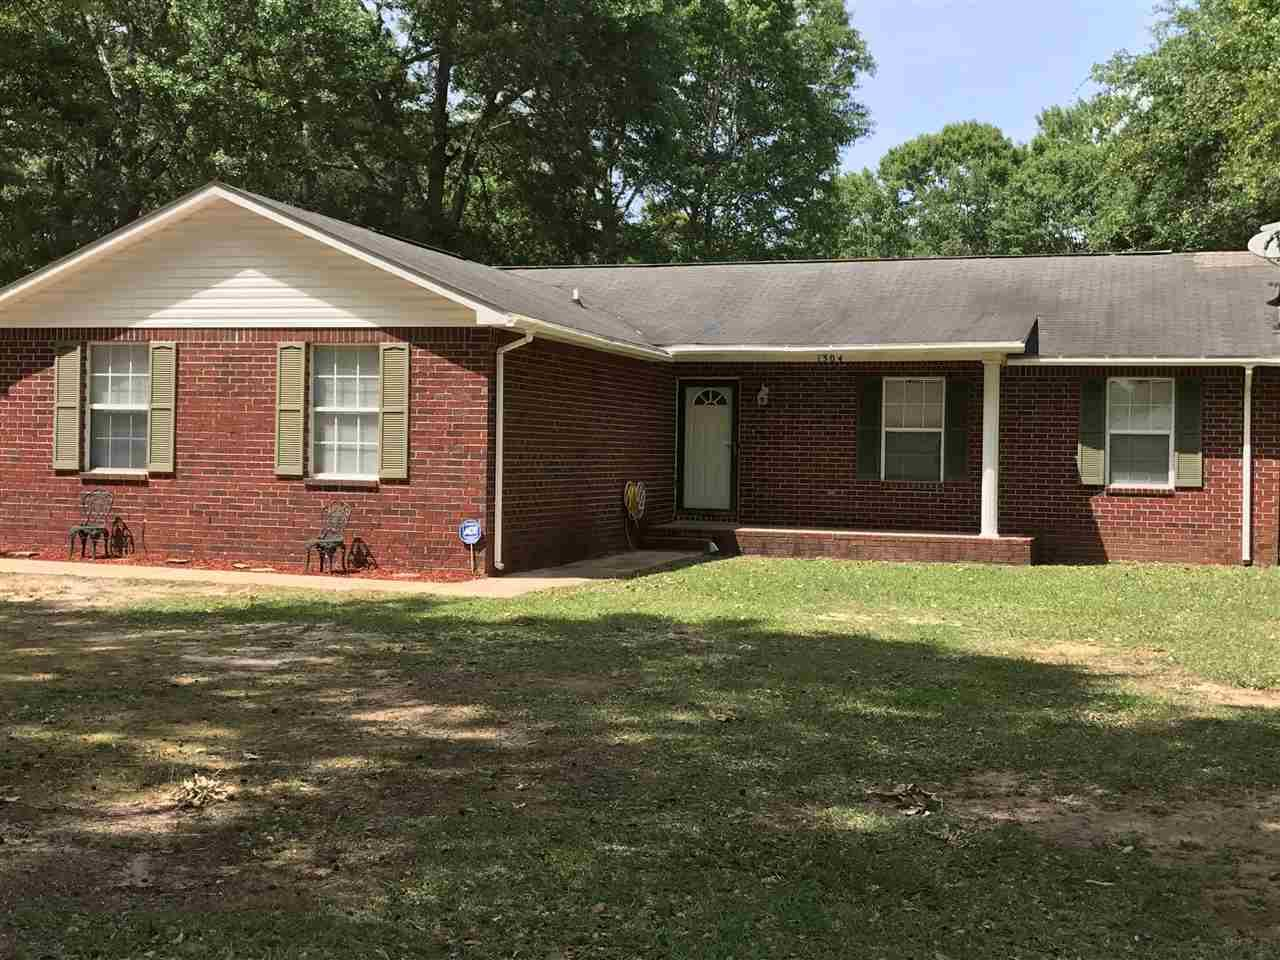 1304 WOODFIELD DR, CANTONMENT, FL 32533